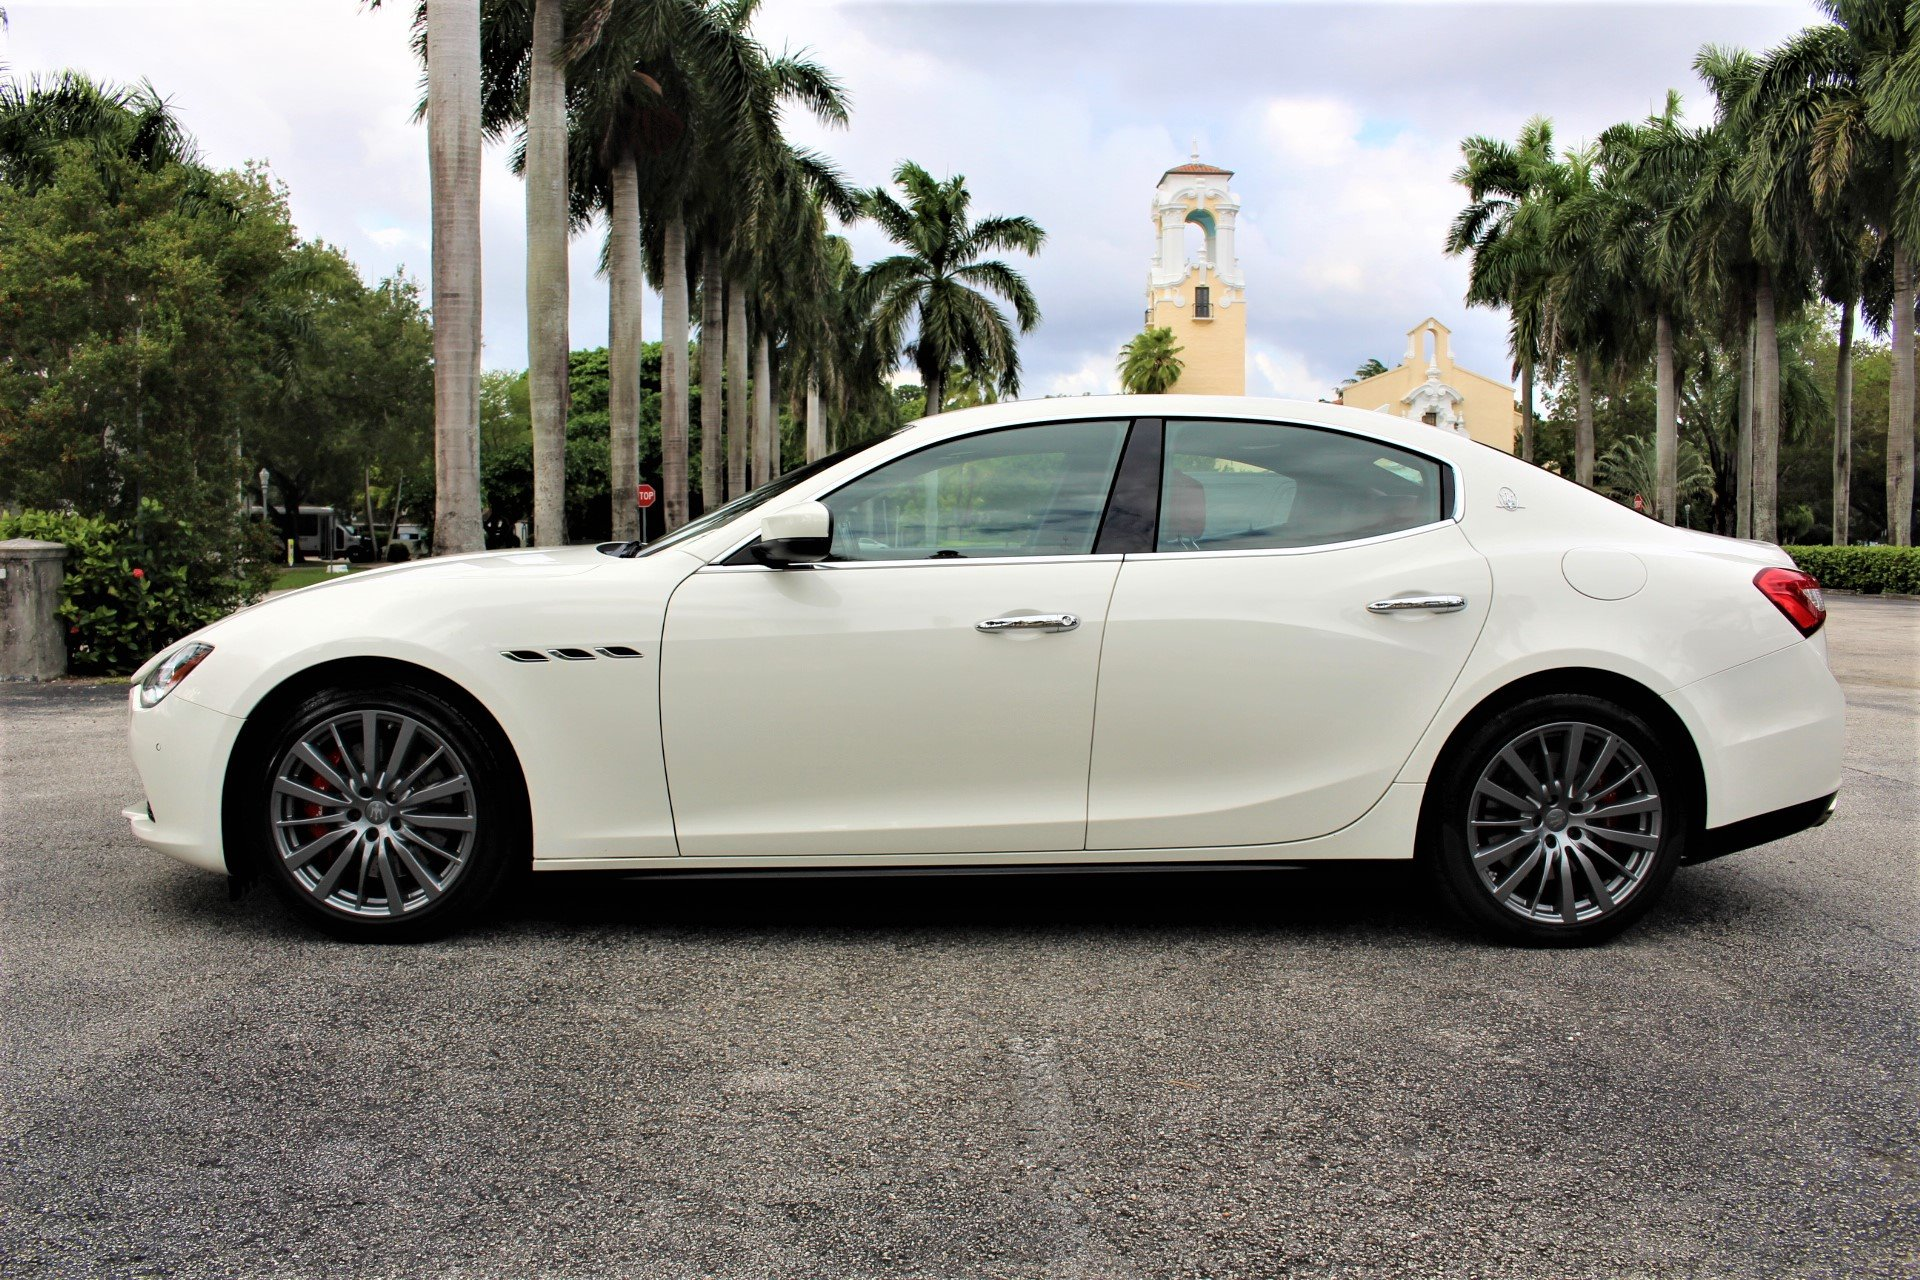 Used 2017 Maserati Ghibli S Q4 for sale Sold at The Gables Sports Cars in Miami FL 33146 4